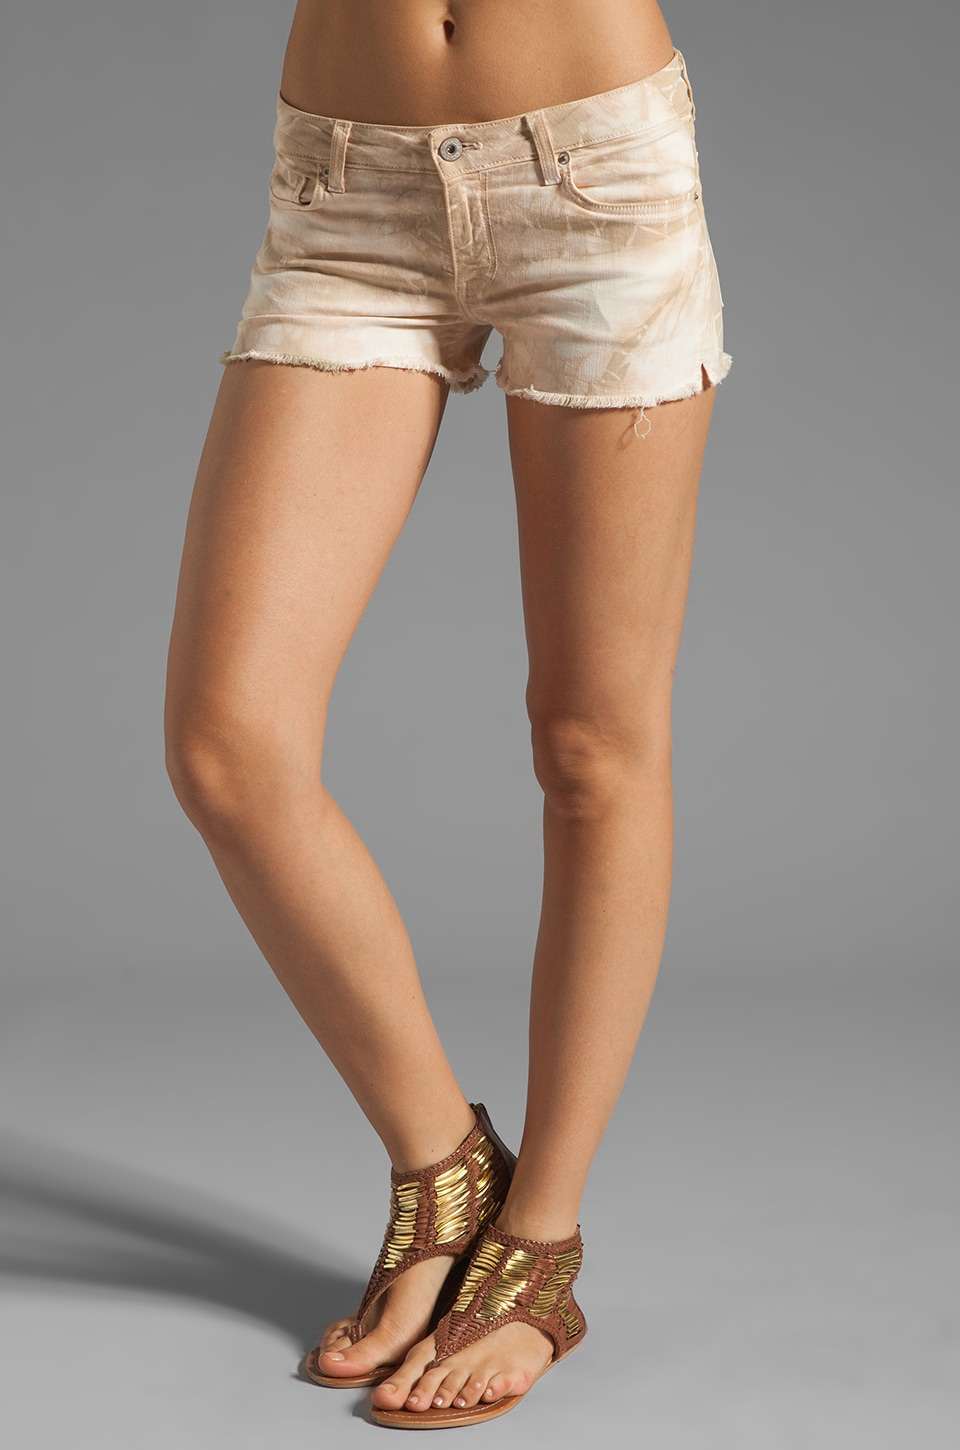 Dakota Collective Lela Raw Edge Short in Tribal Tie-Dye Cream/Taupe